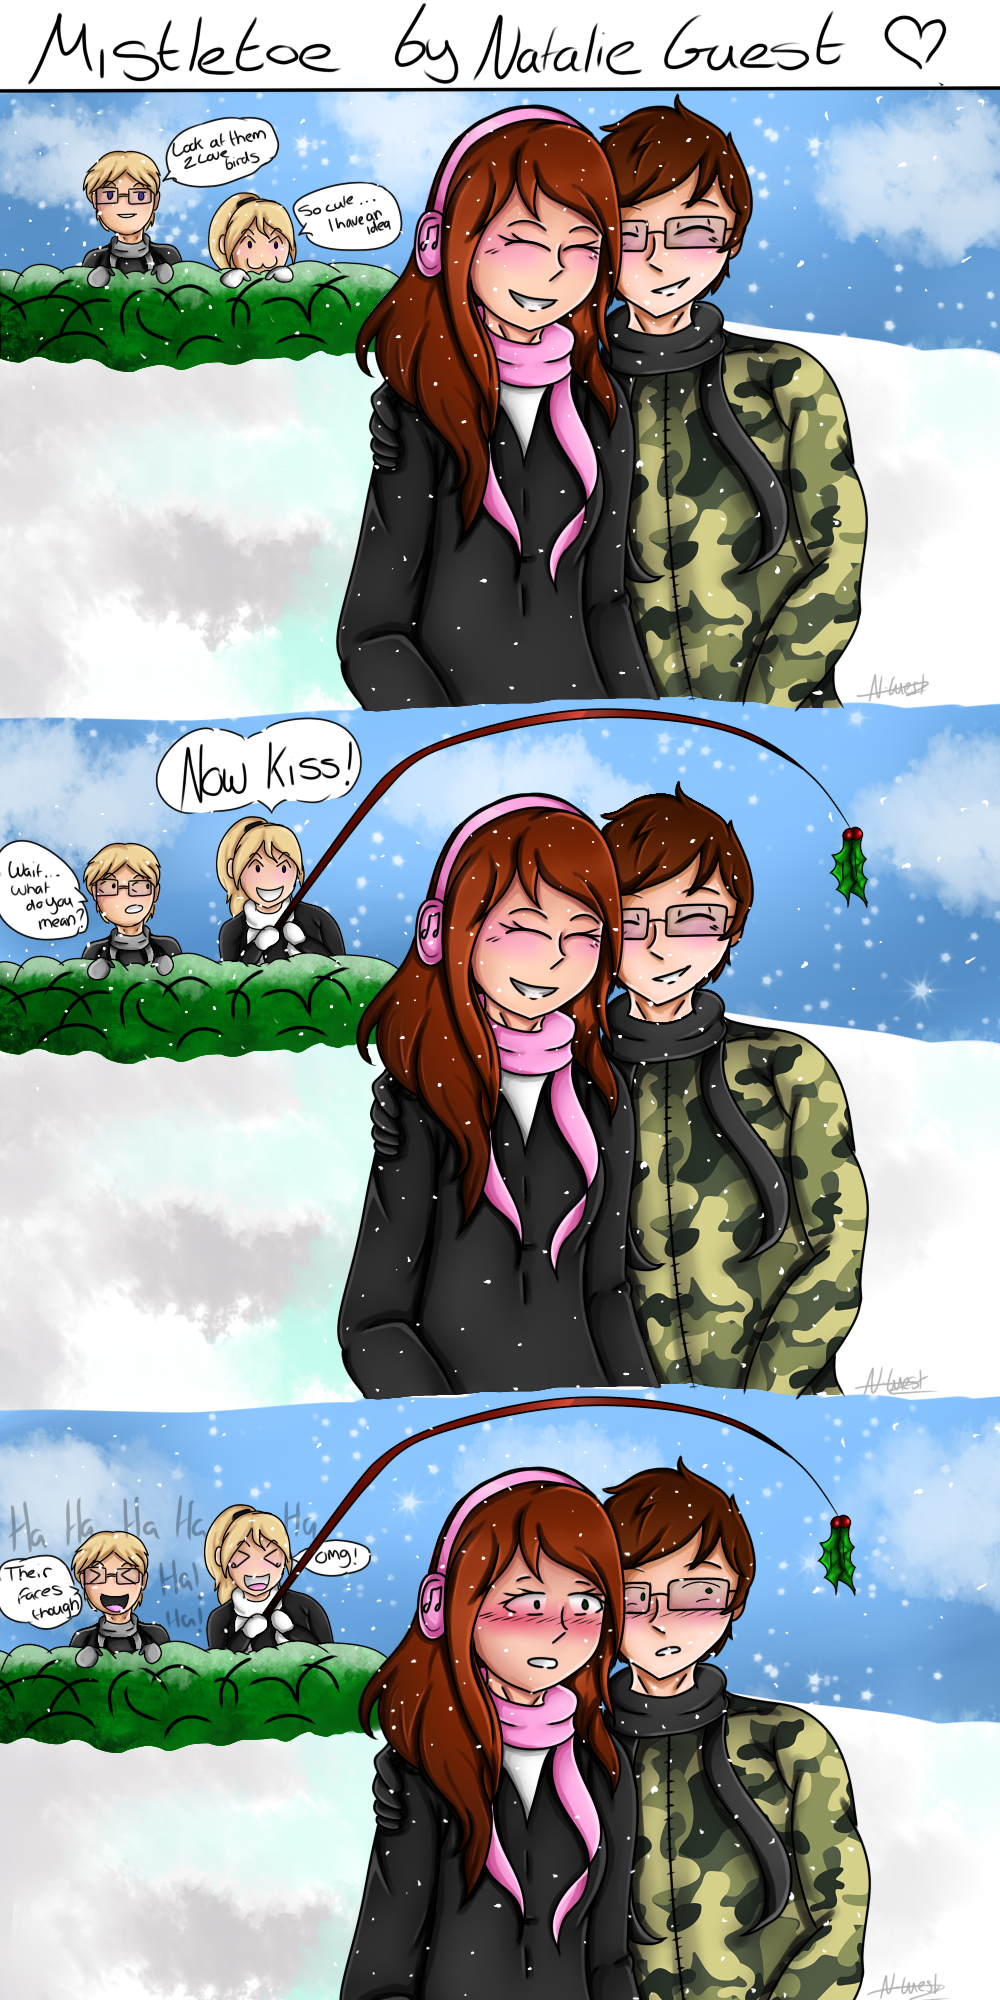 Mistletoe Funny Winter Comic: Priestley Squad by NatalieGuest